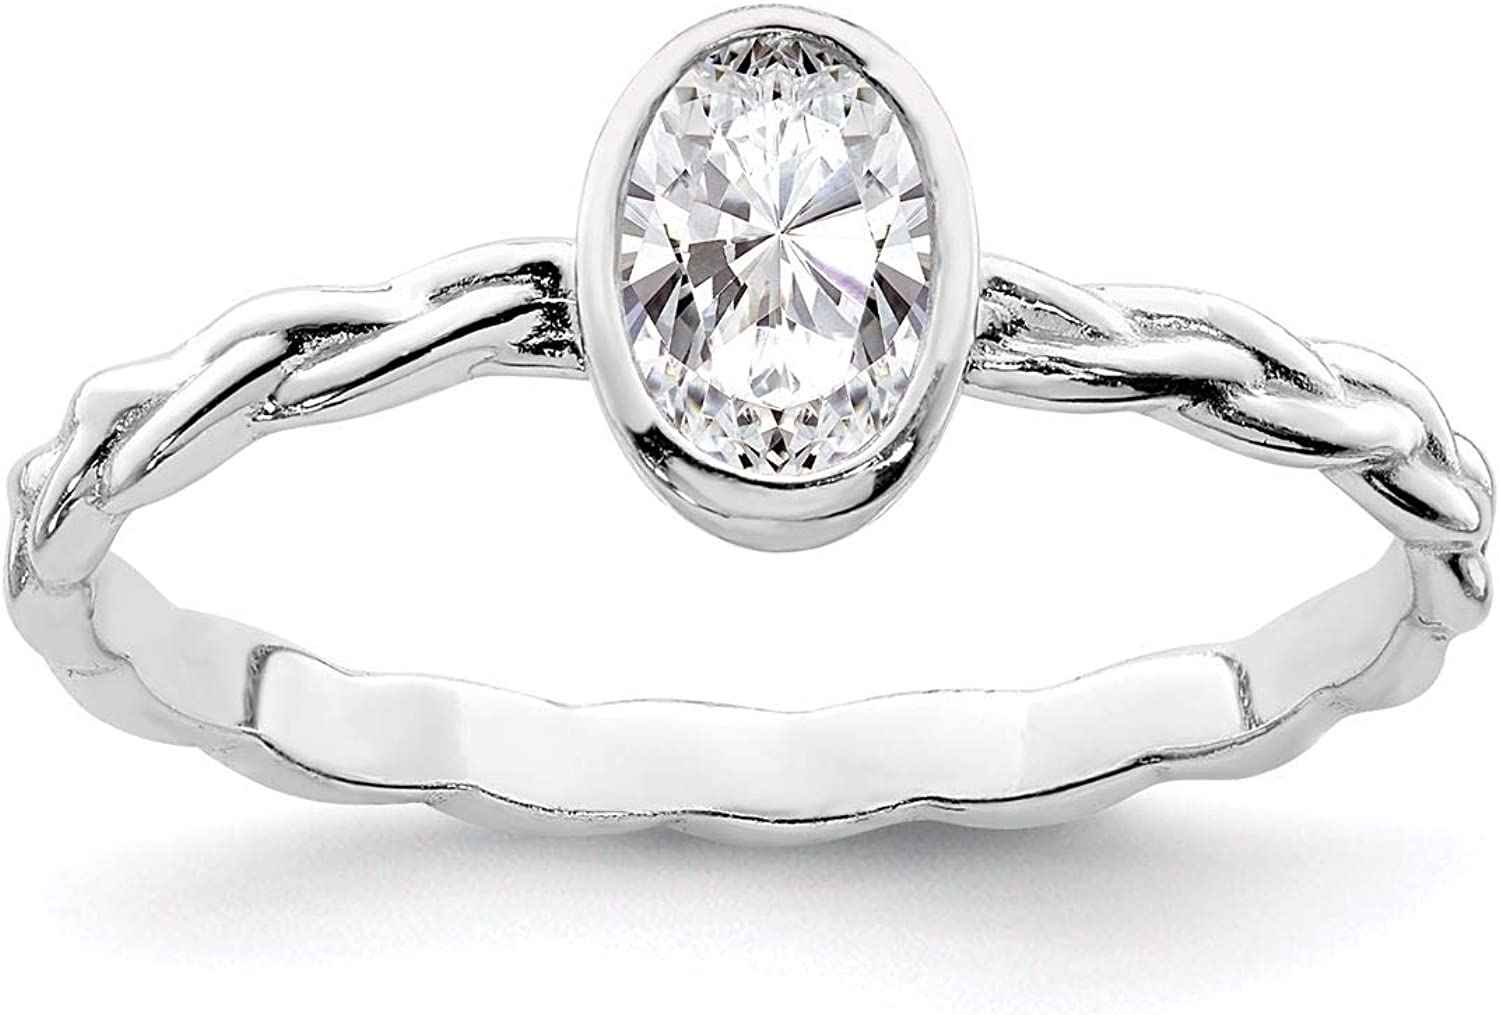 Brilliant Embers 925 Sterling Silver Rhodium-plated Polished CZ Heart Ring Band Size 6-8